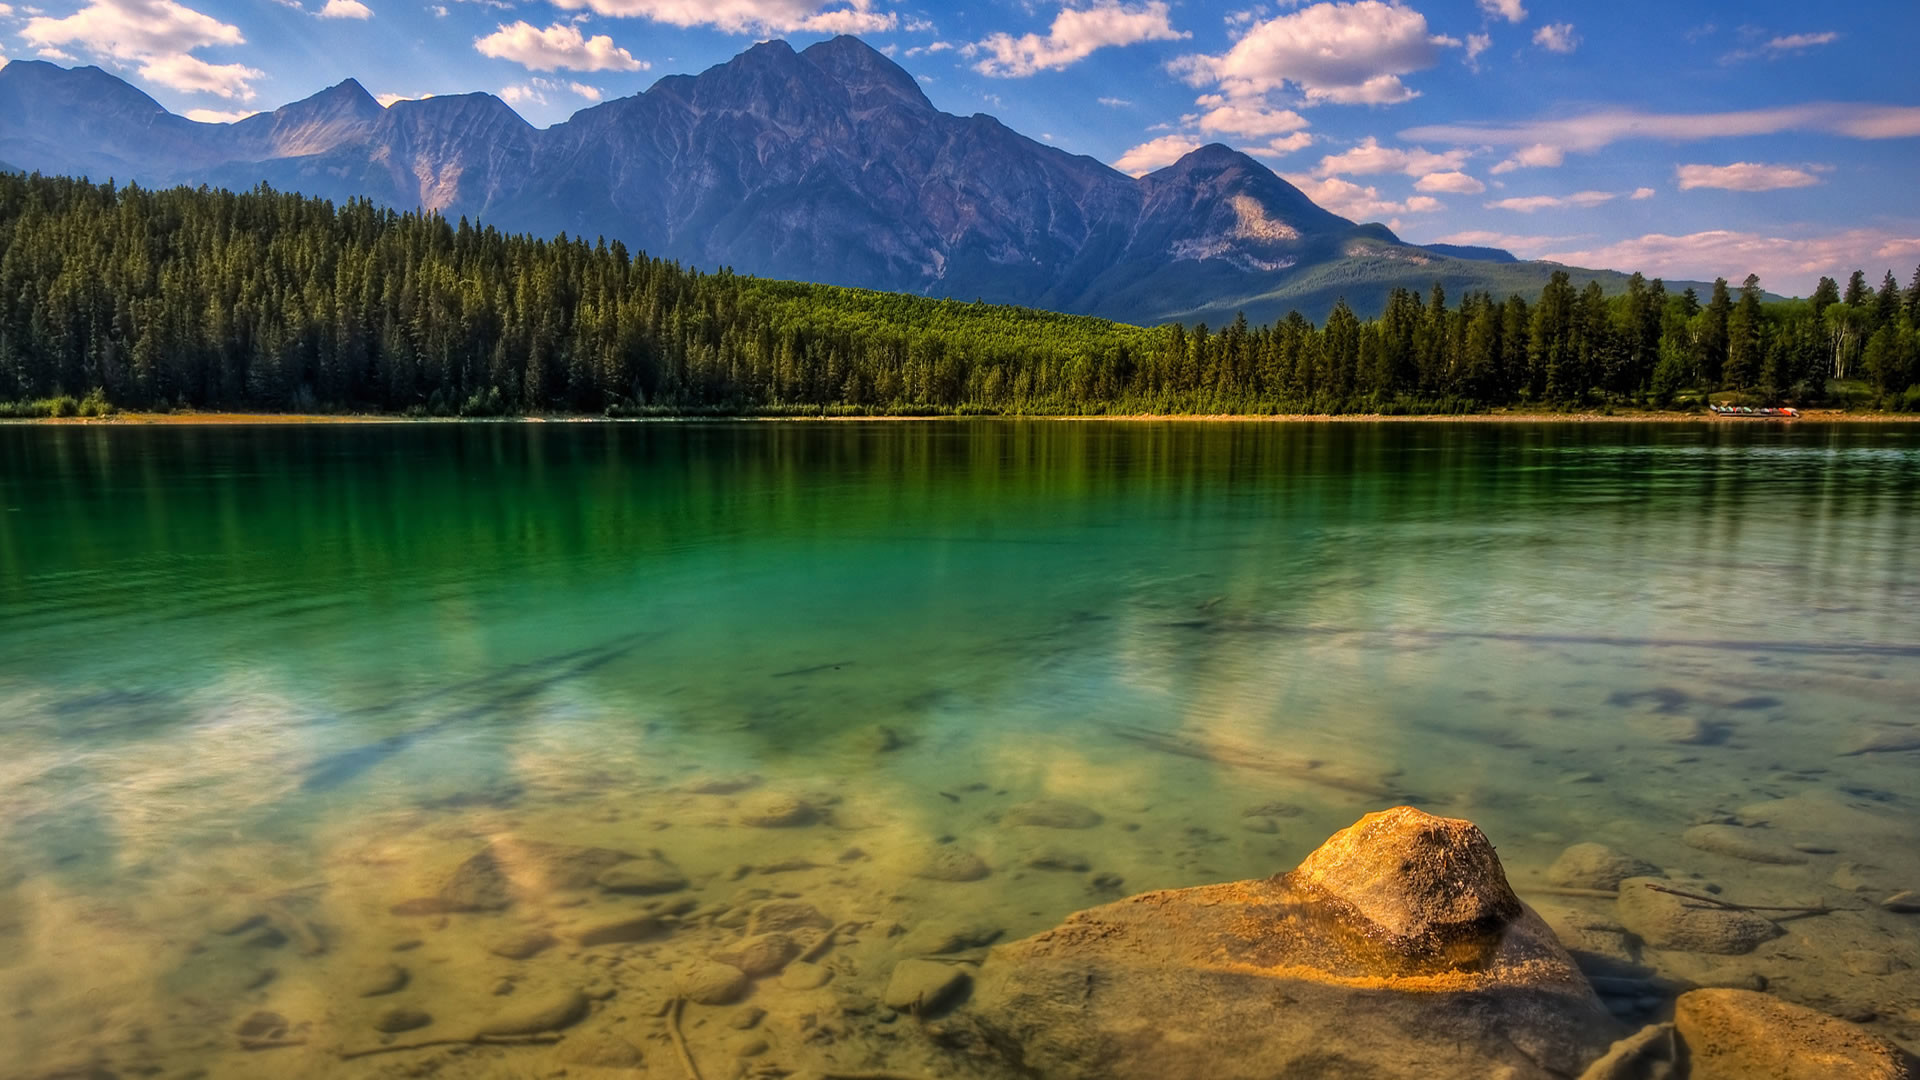 Mountain,Nature, Water, Forest, Clean wallpaper thumb